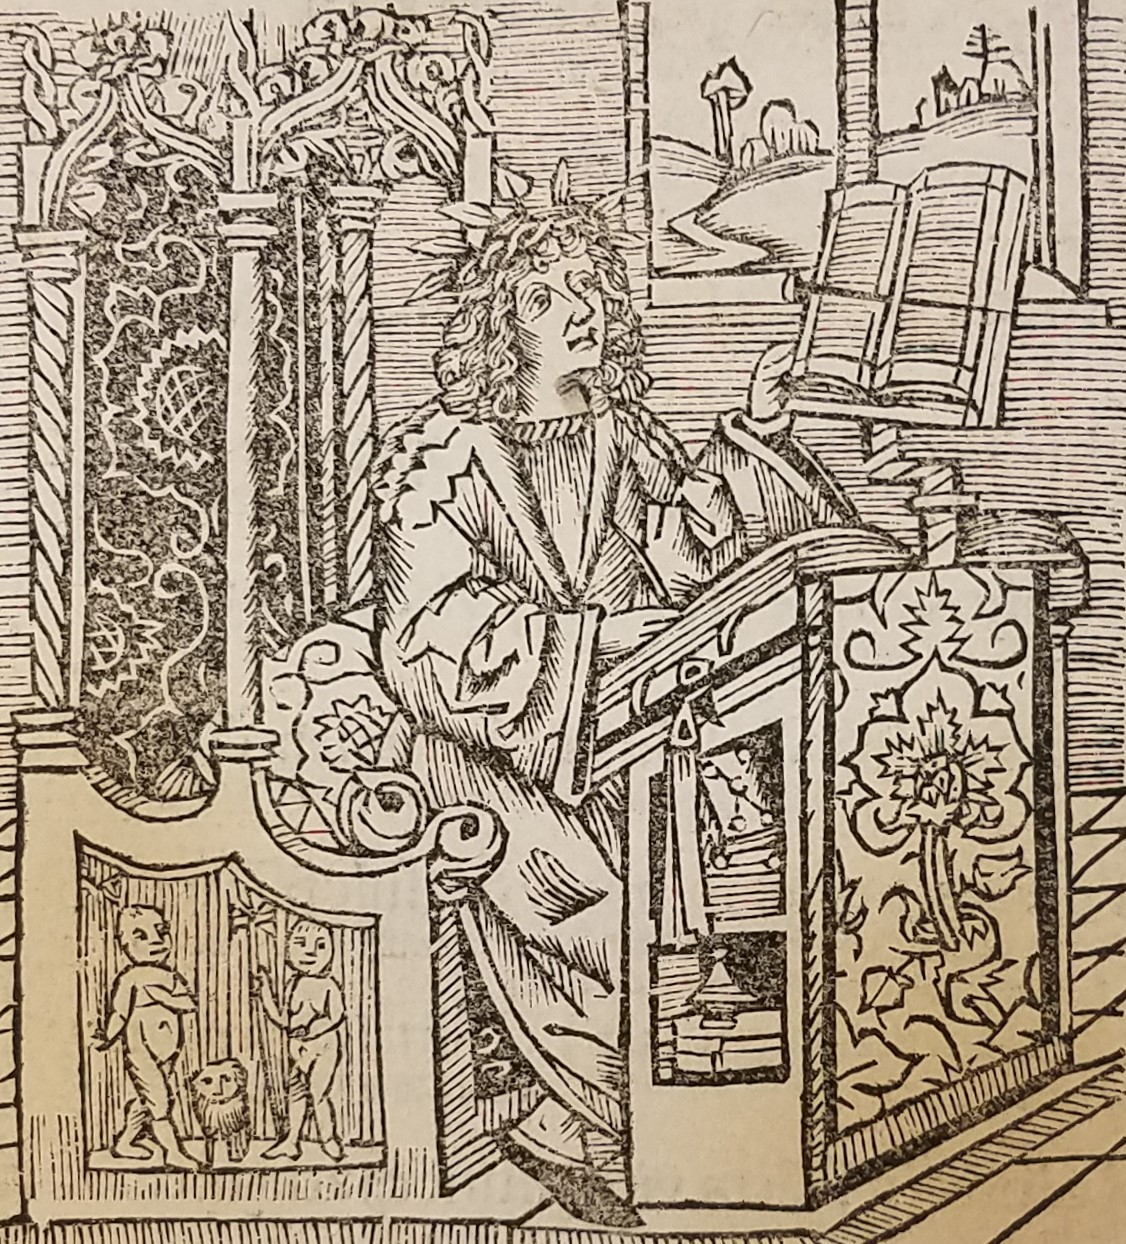 Horace sitting at a desk